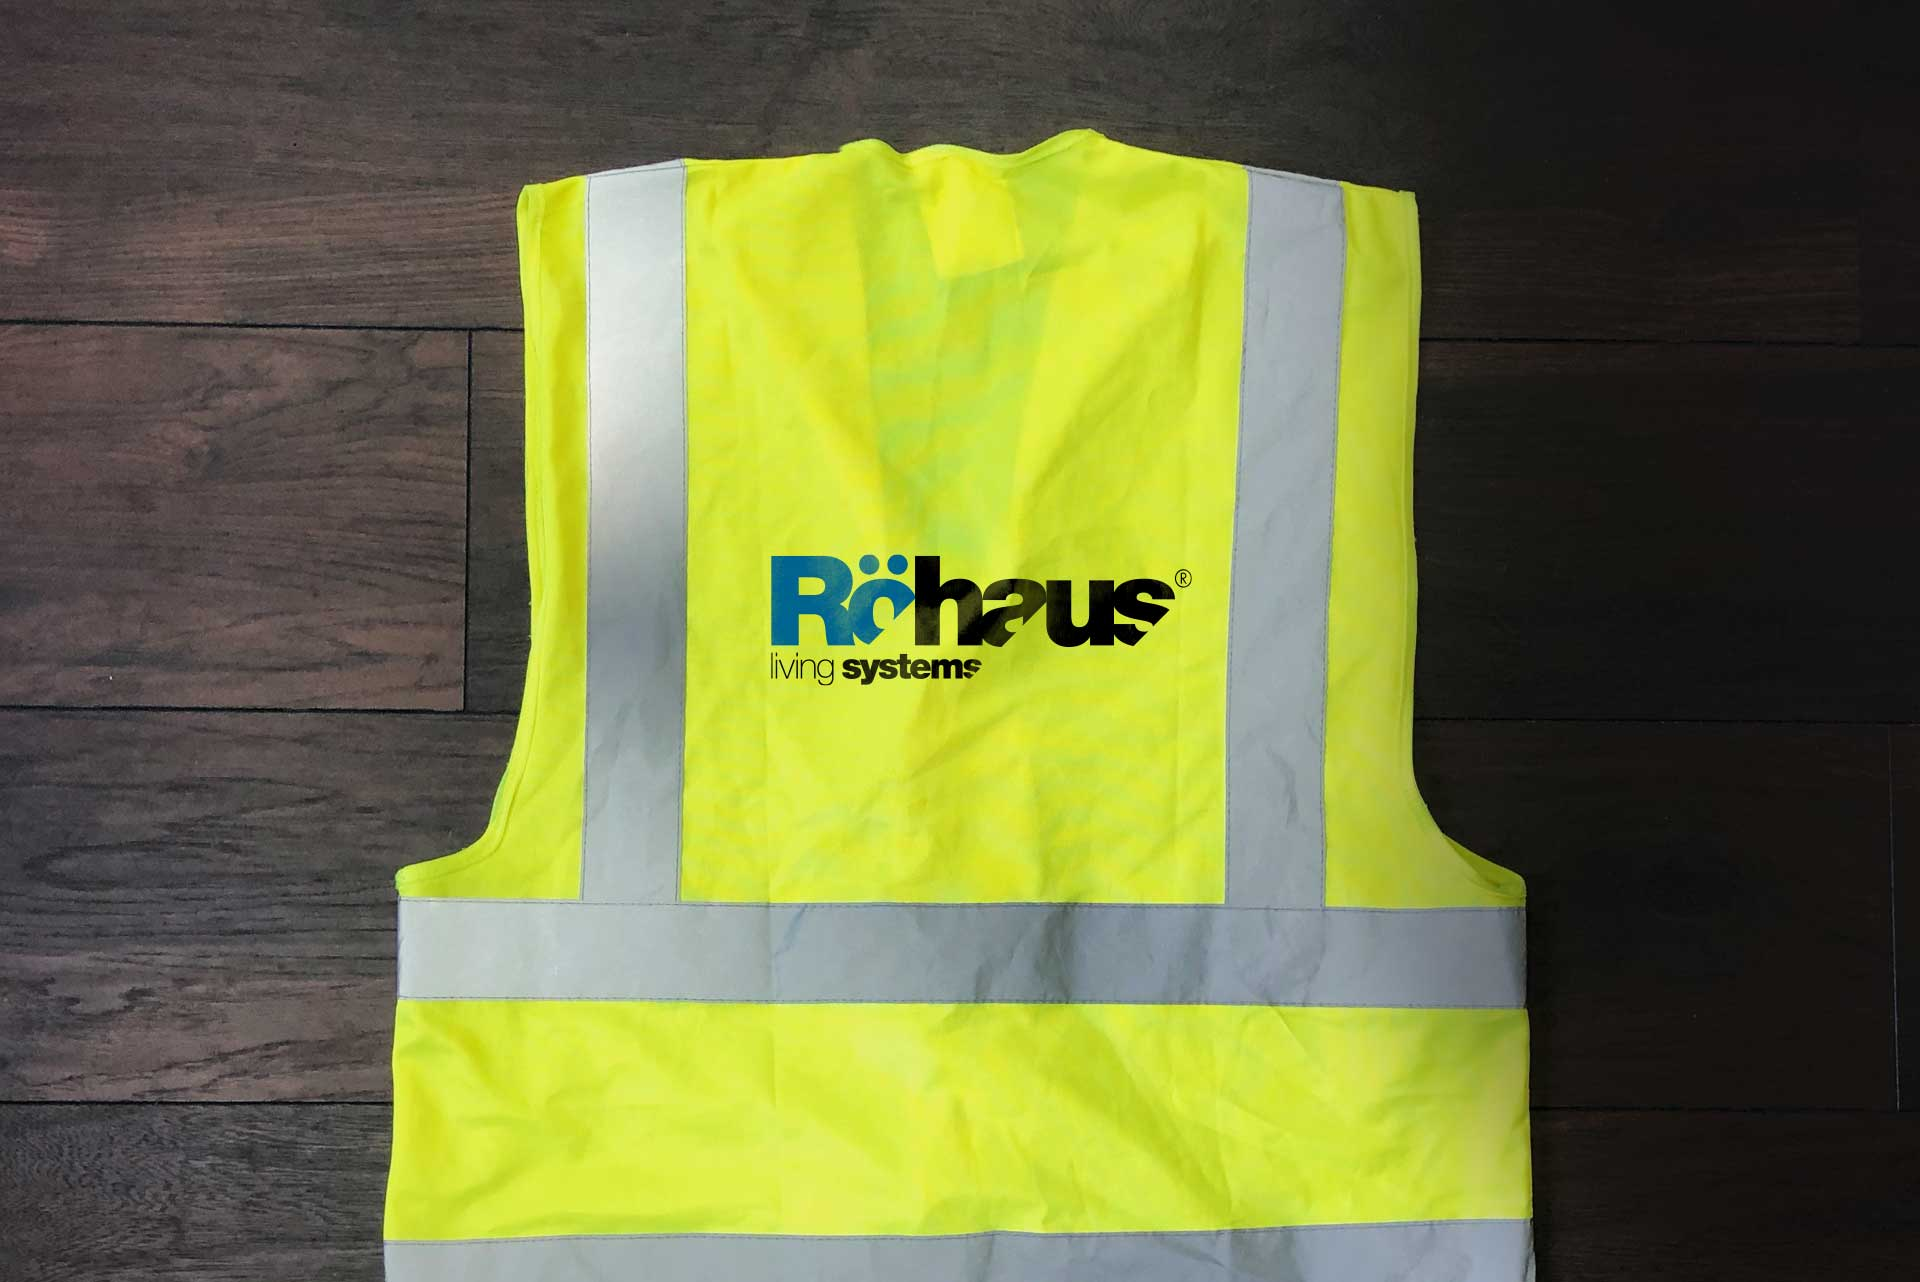 Hi-Vis Jacket for Rohaus